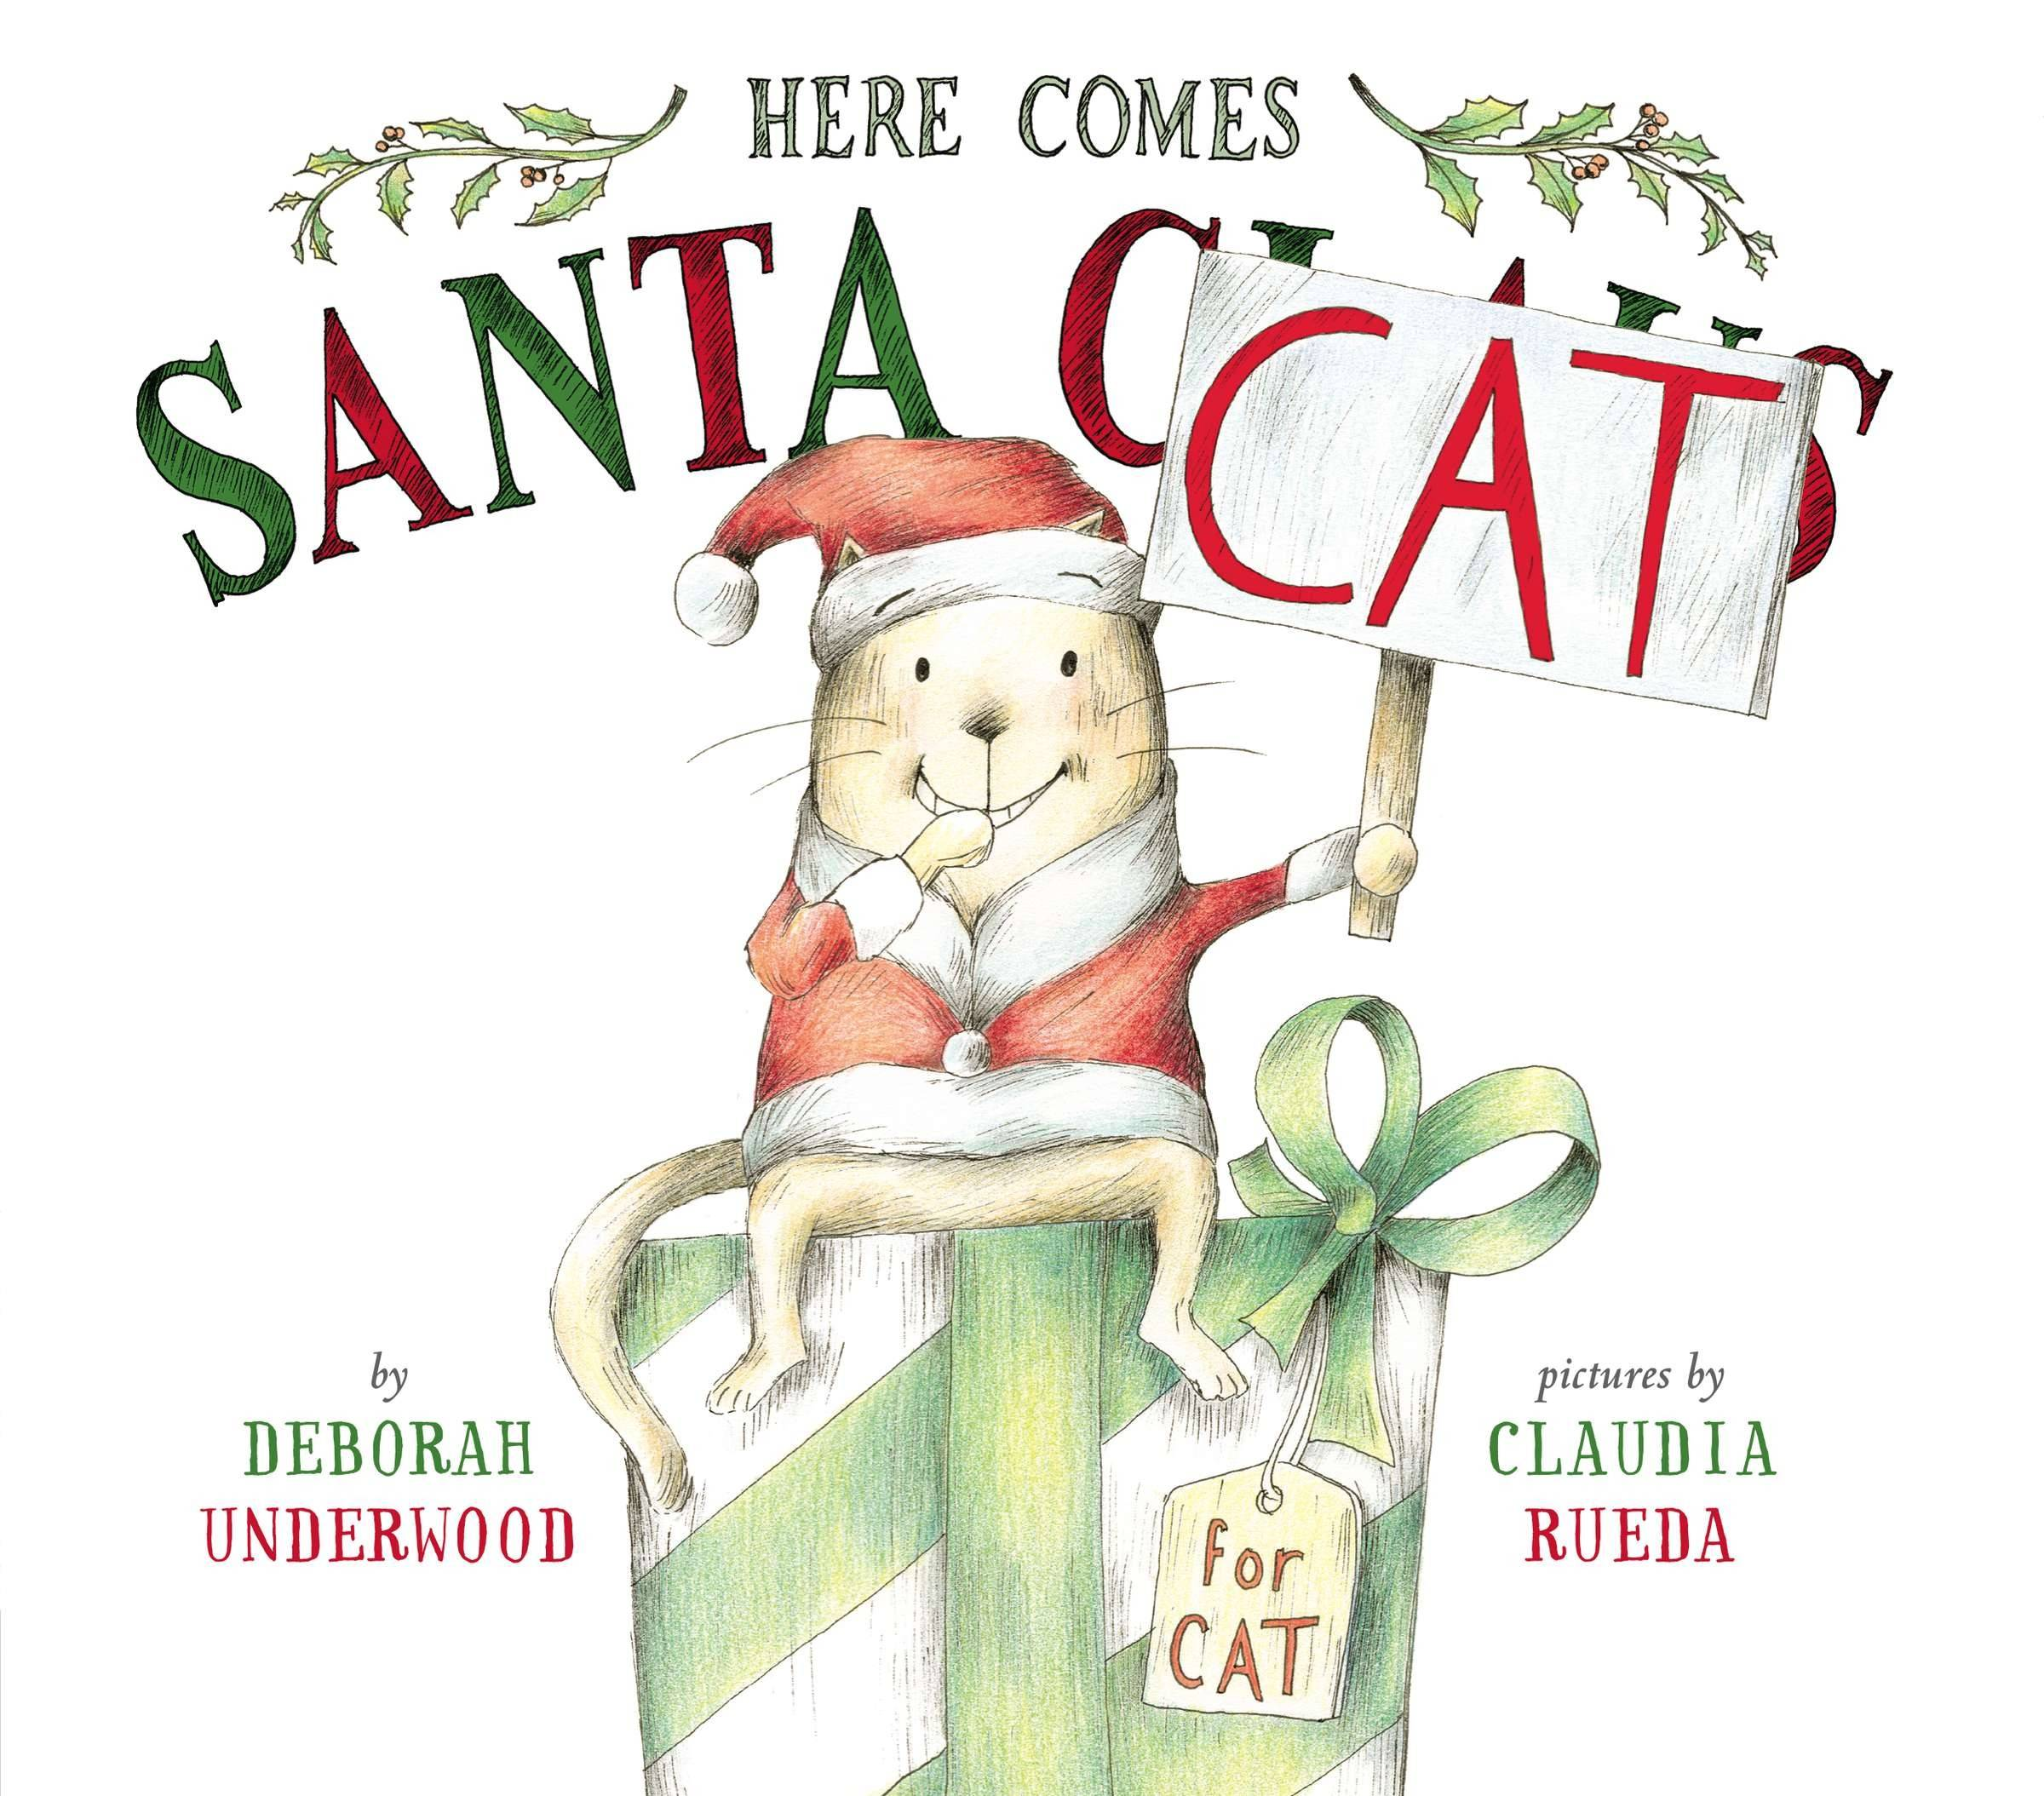 "This book cover image released by Dial Books for Young Readers shows ""Here Comes Santa Cat,"" by Deborah Underwood, pictures by Claudia Rueda. There are jet pack mishaps and dead fish gifts for children as a wily but mute cat holding placards on sticks to communicate impersonates Santa Claus to ensure he gets a gift after a particularly naughty year."